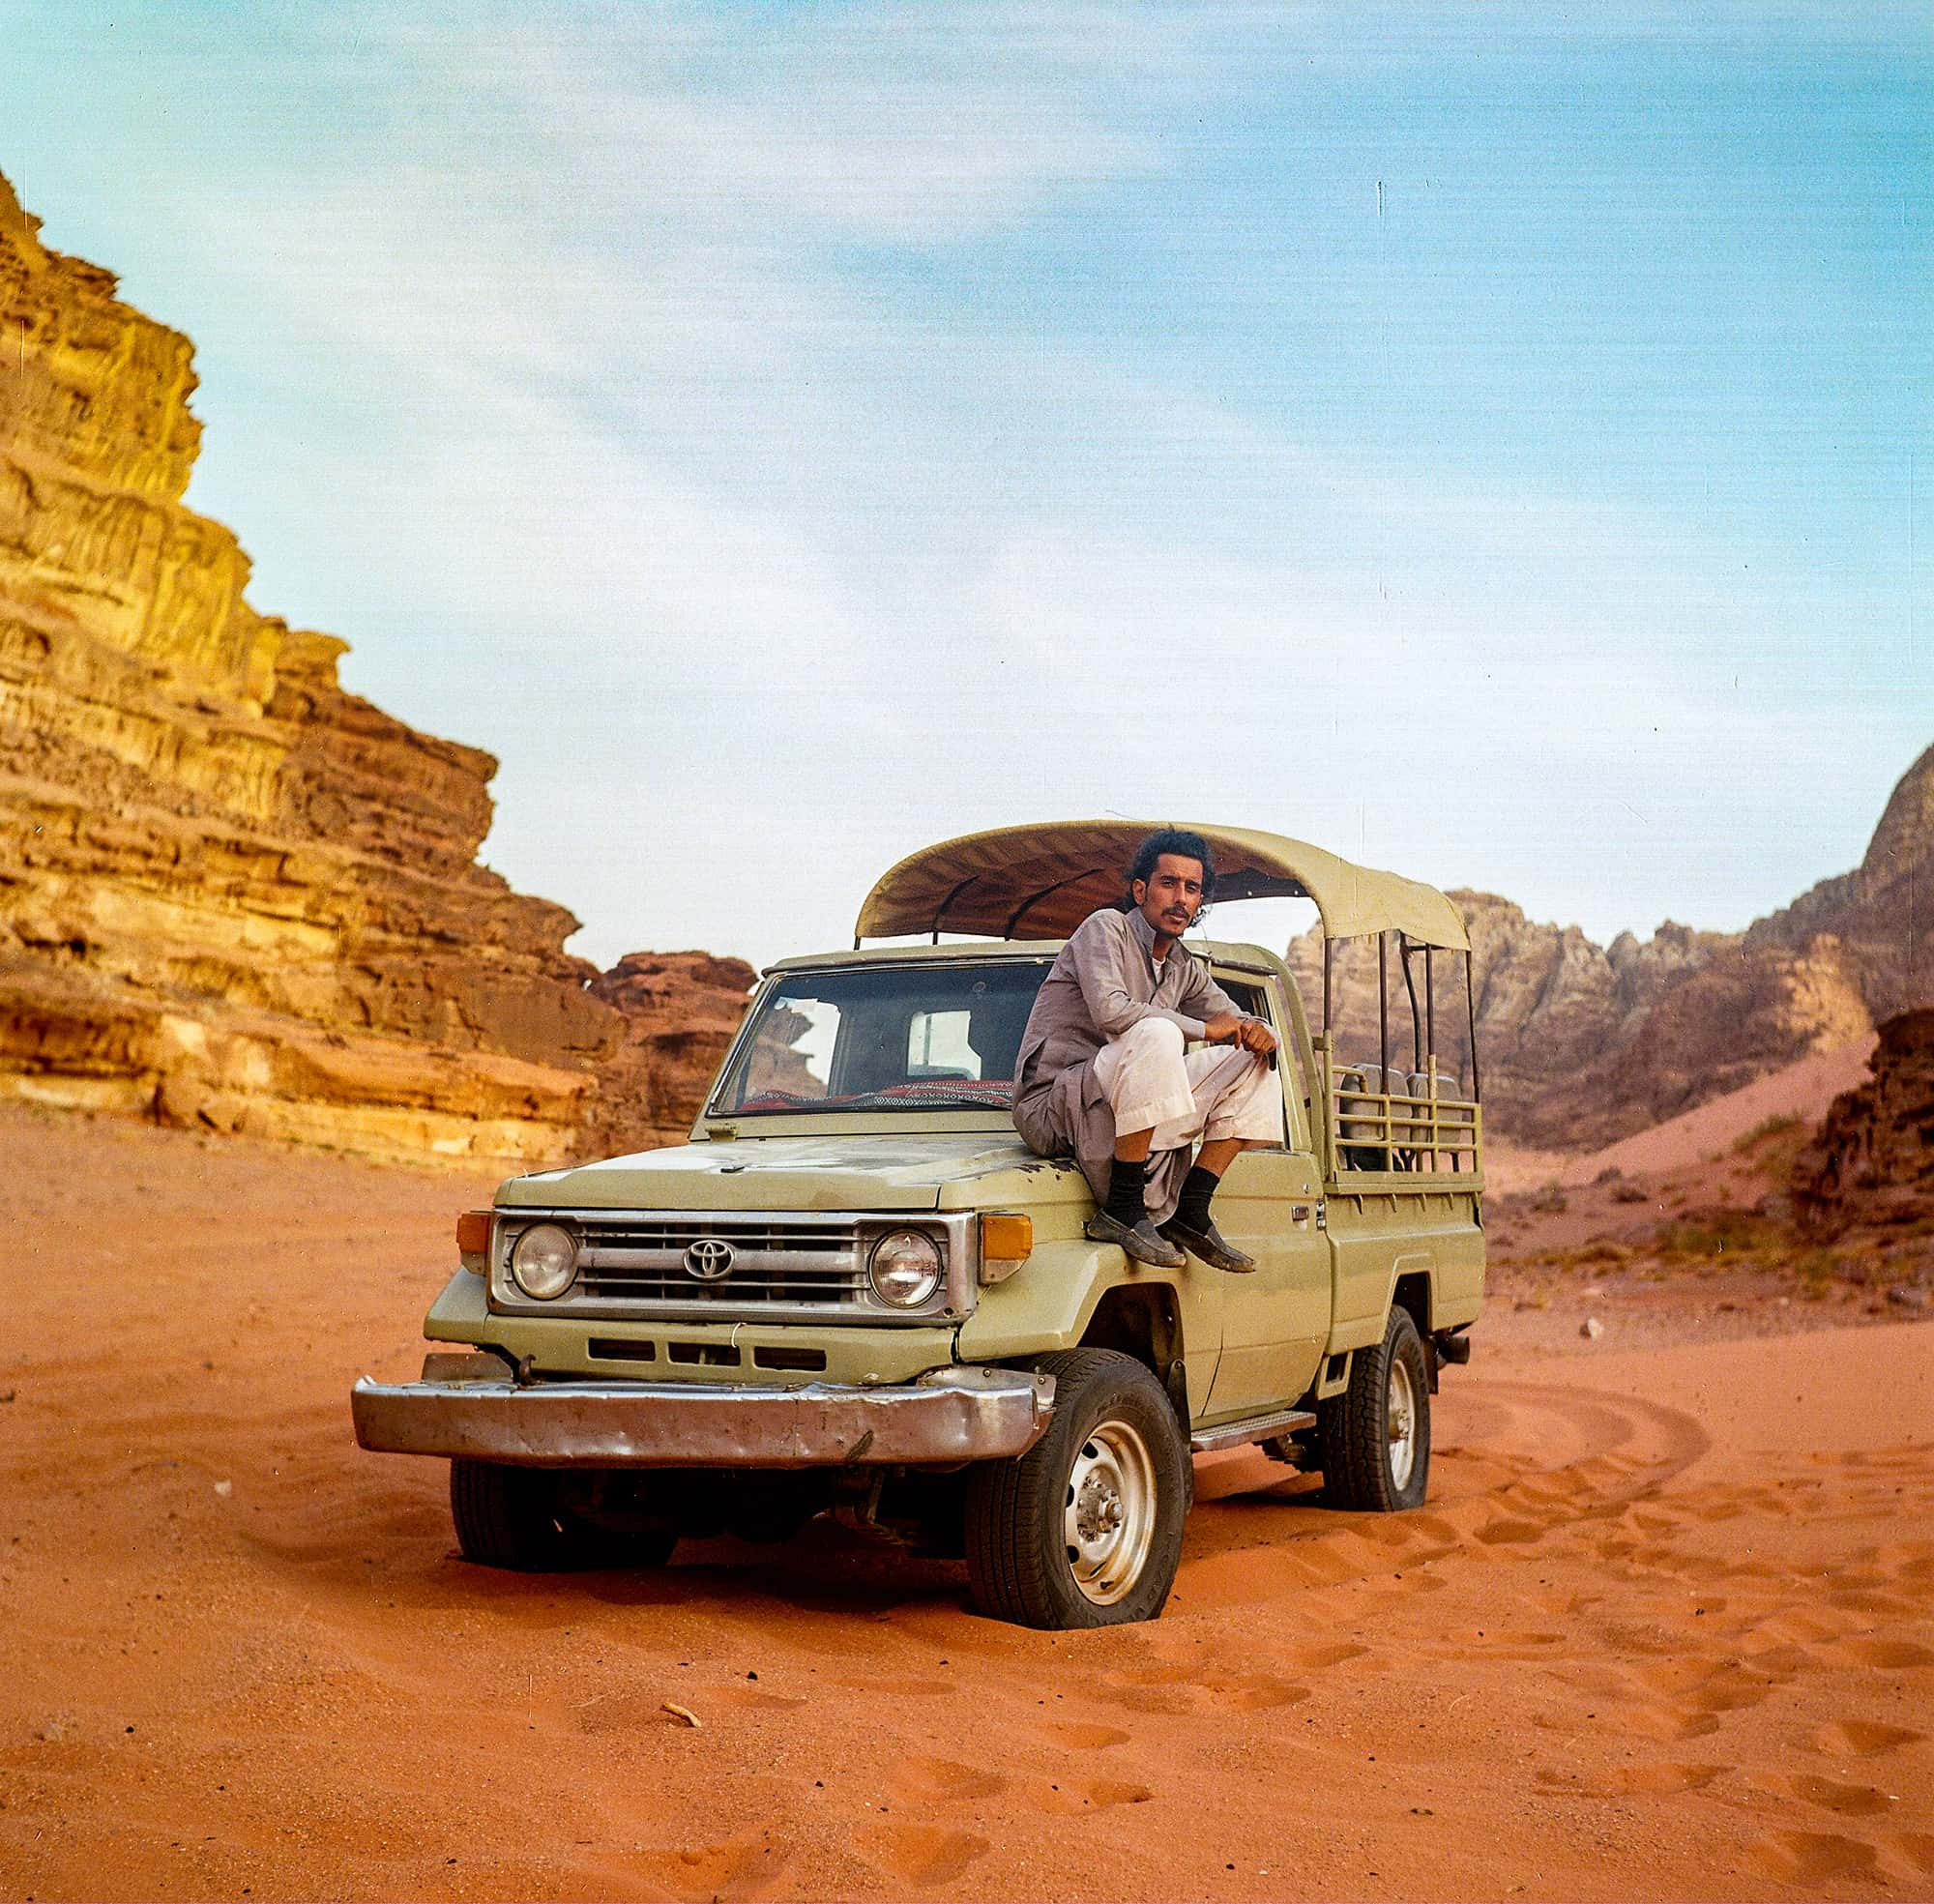 Jeep Tours Of Wadi Rum Desert By Experienced Bedouin Guides